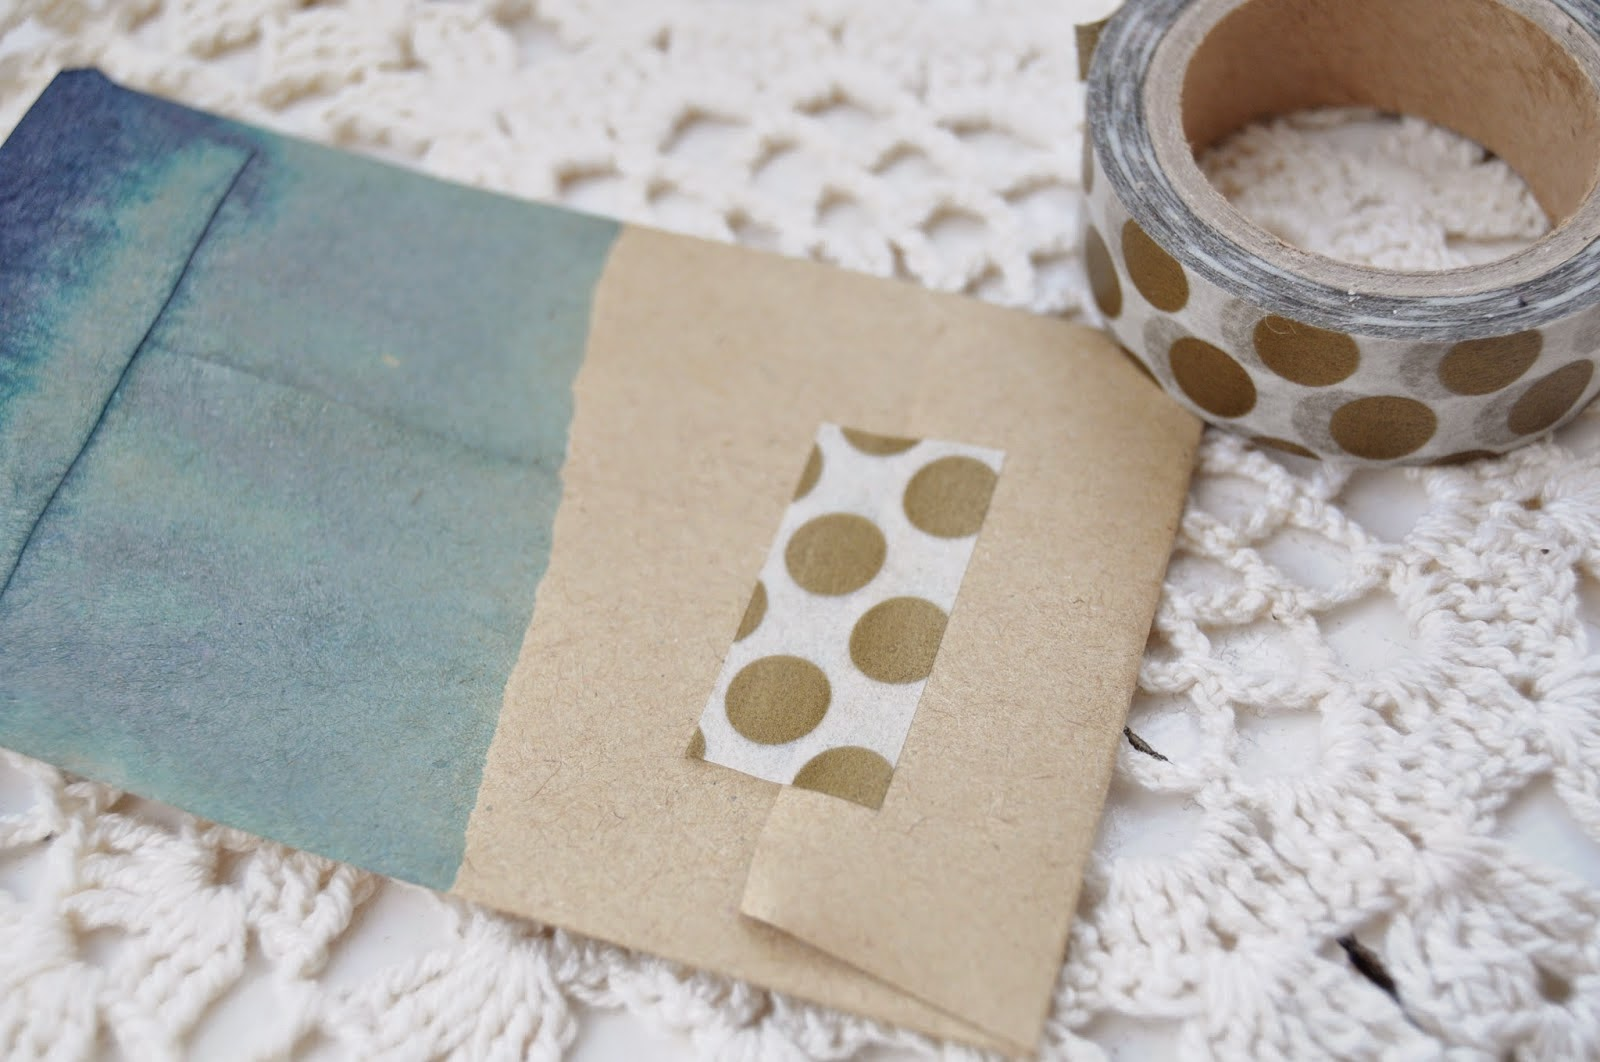 http://thecuriouslifeoflisa.blogspot.co.uk/2015/04/diy-dip-dyed-envelopes-with-food.html